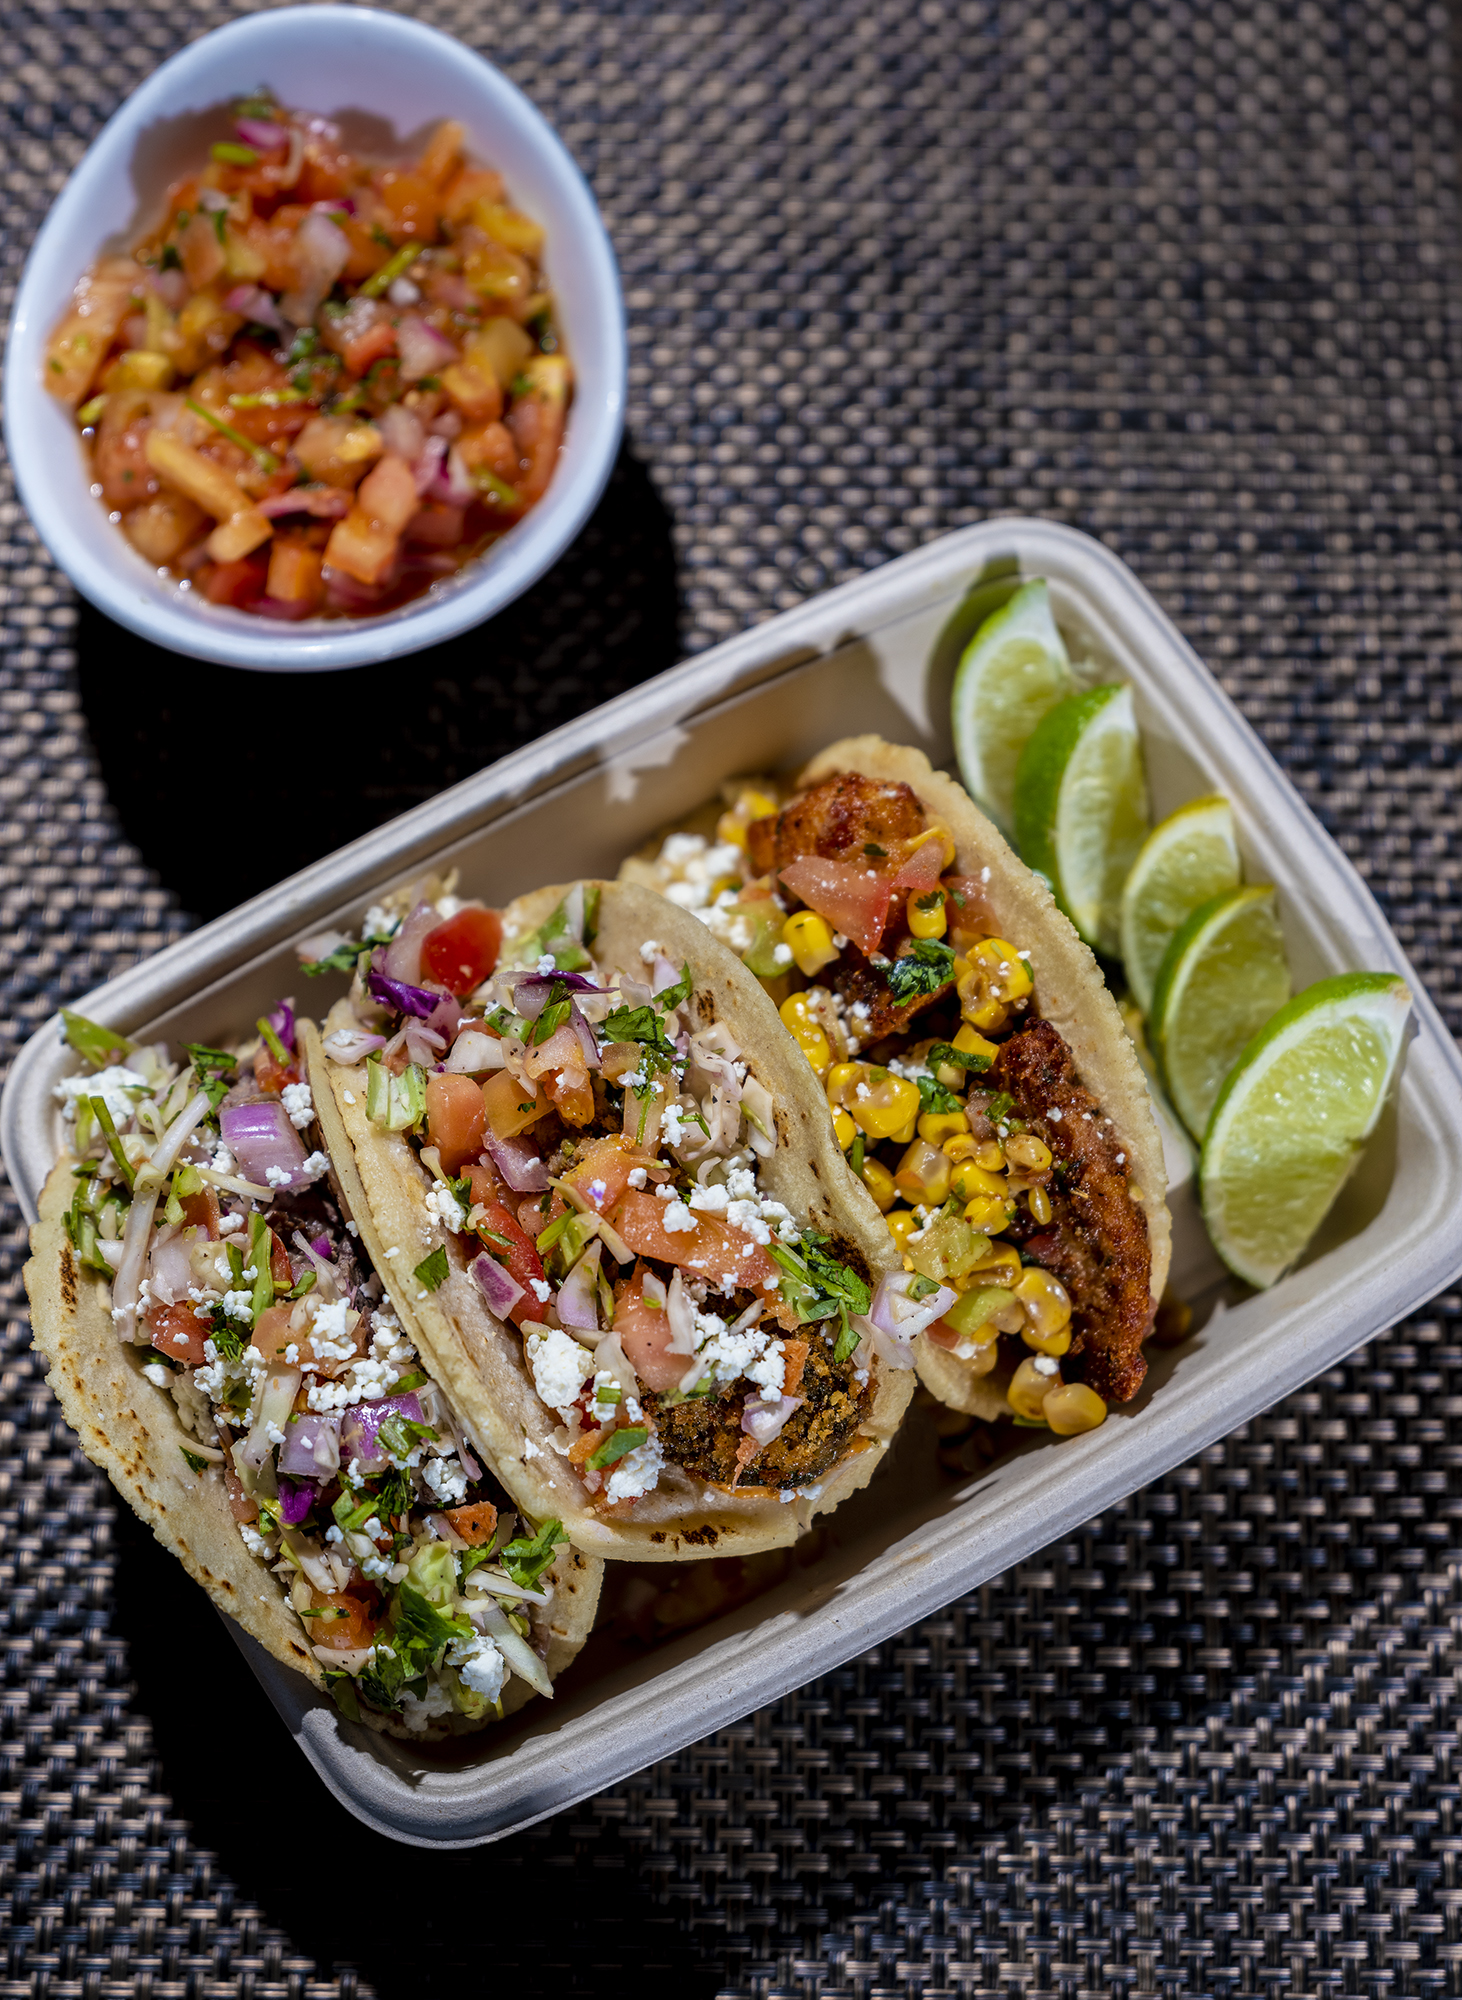 Shaw's Rito Loco Adds Variety With a Colorful New Taco Menu Full of Slow-Cooked Meat